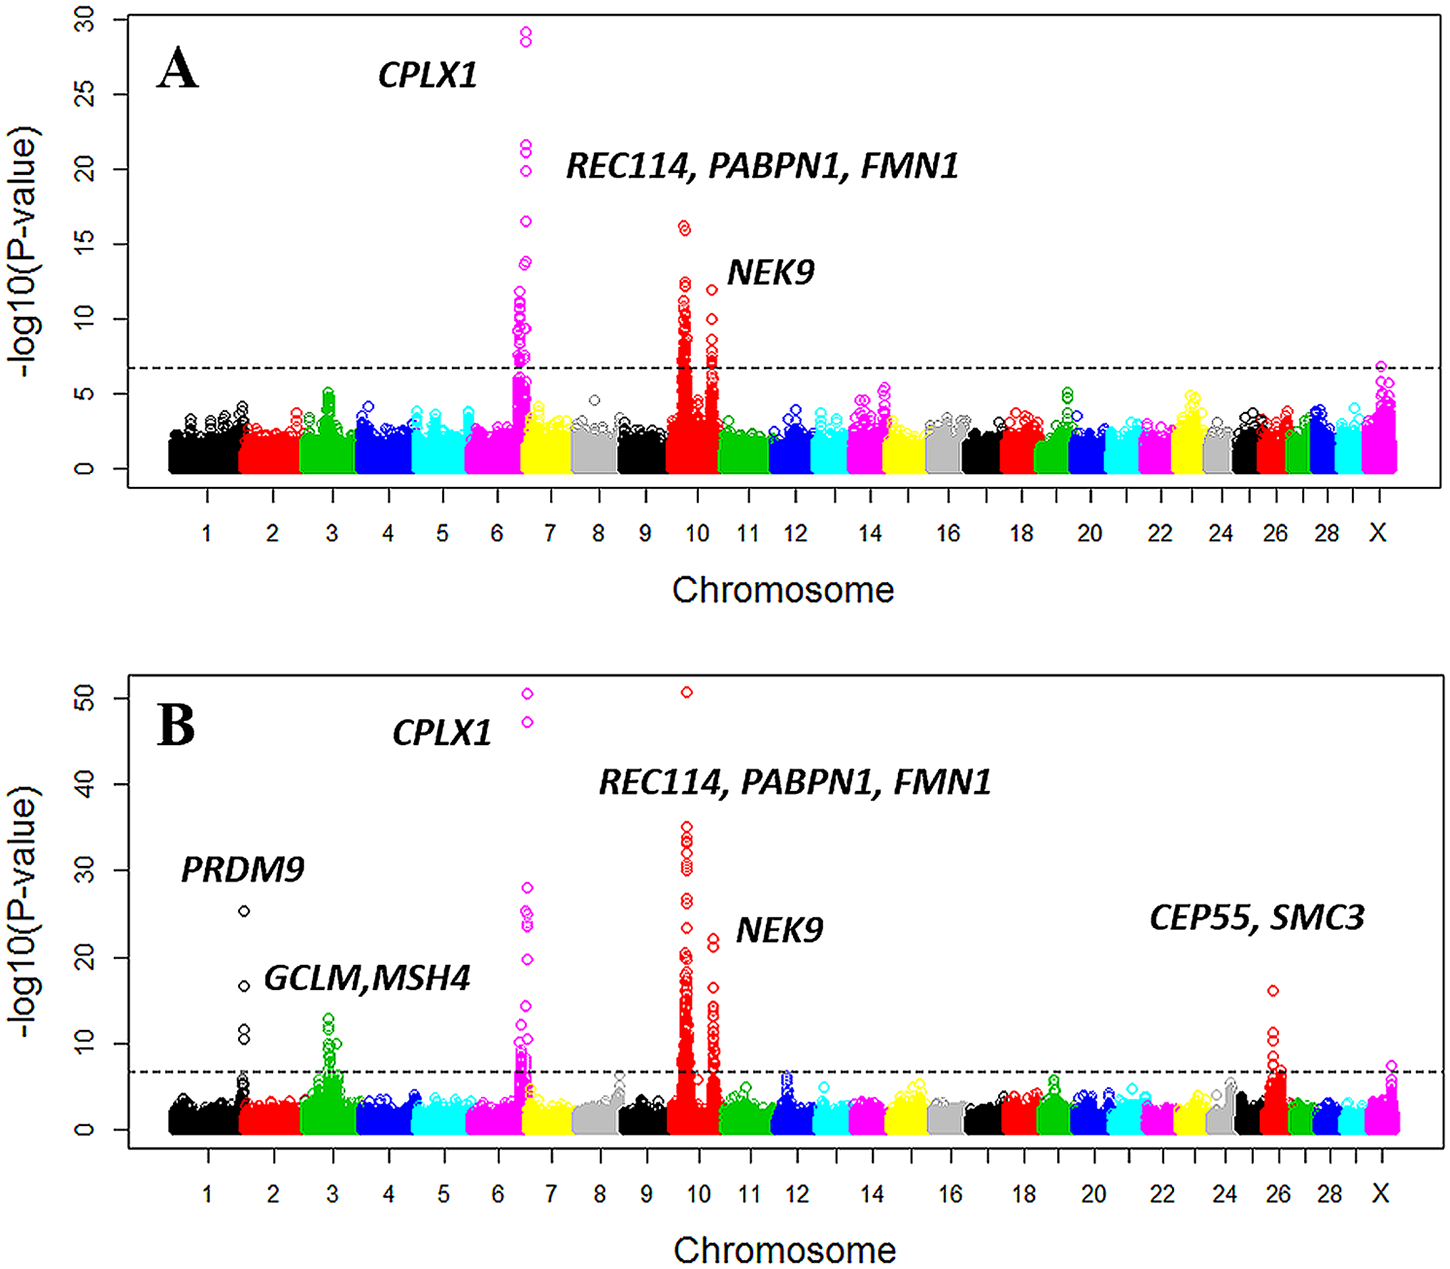 Manhattan plot of the GWAS of genome-wide recombination rates for males (A) and females (B).